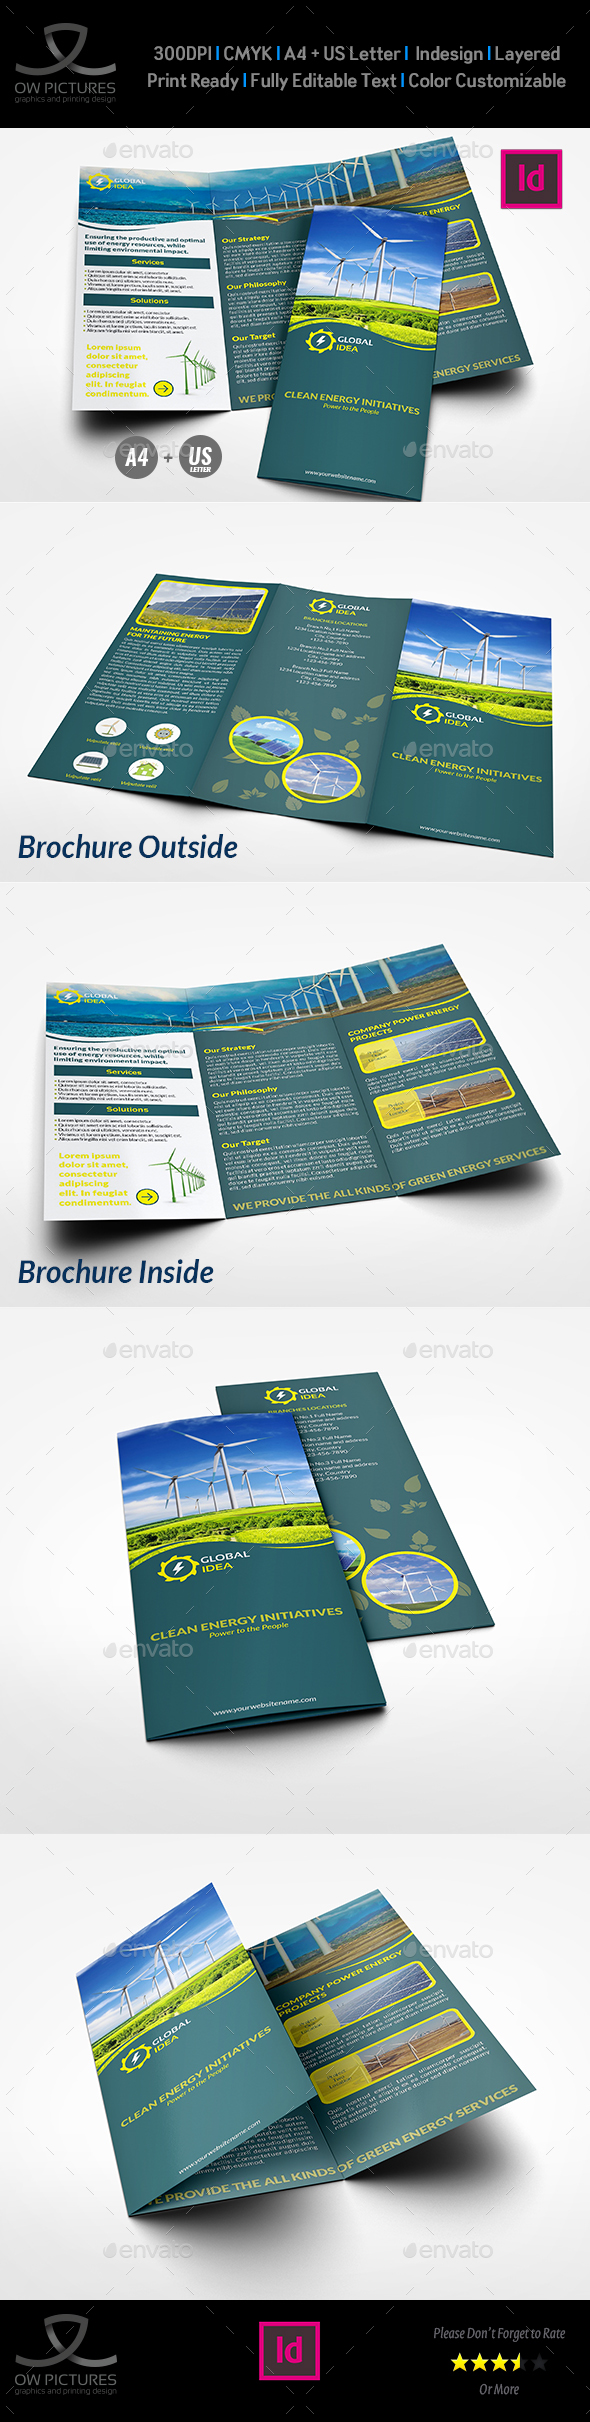 Power Energy Services Tri-Fold Brochure Template - Corporate Brochures